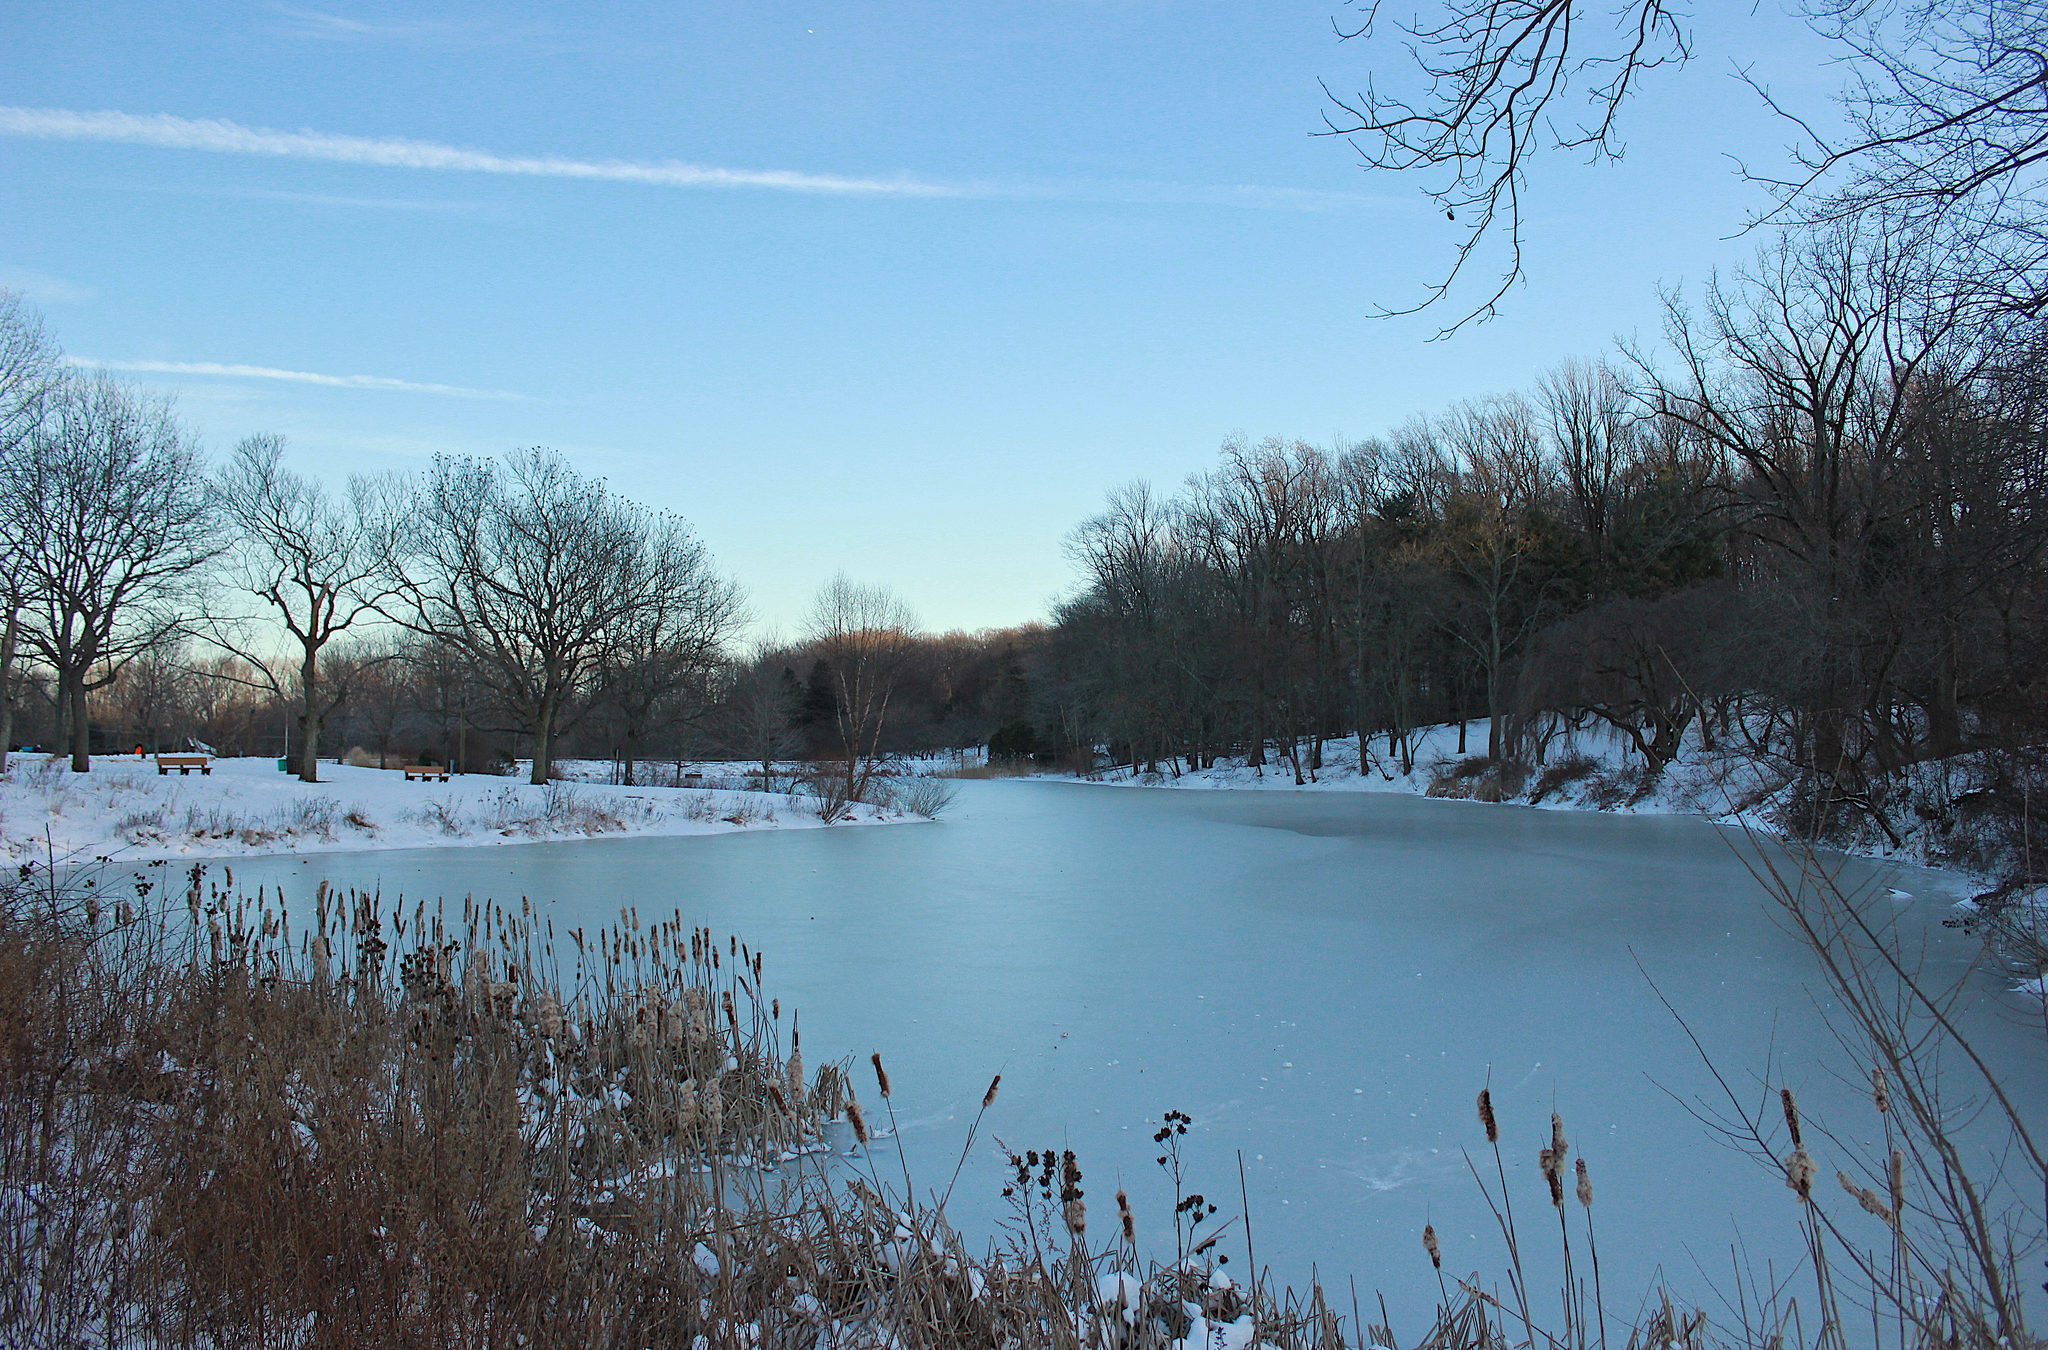 The Amazing Natural Ice Skating Rink At Holmdel Park In